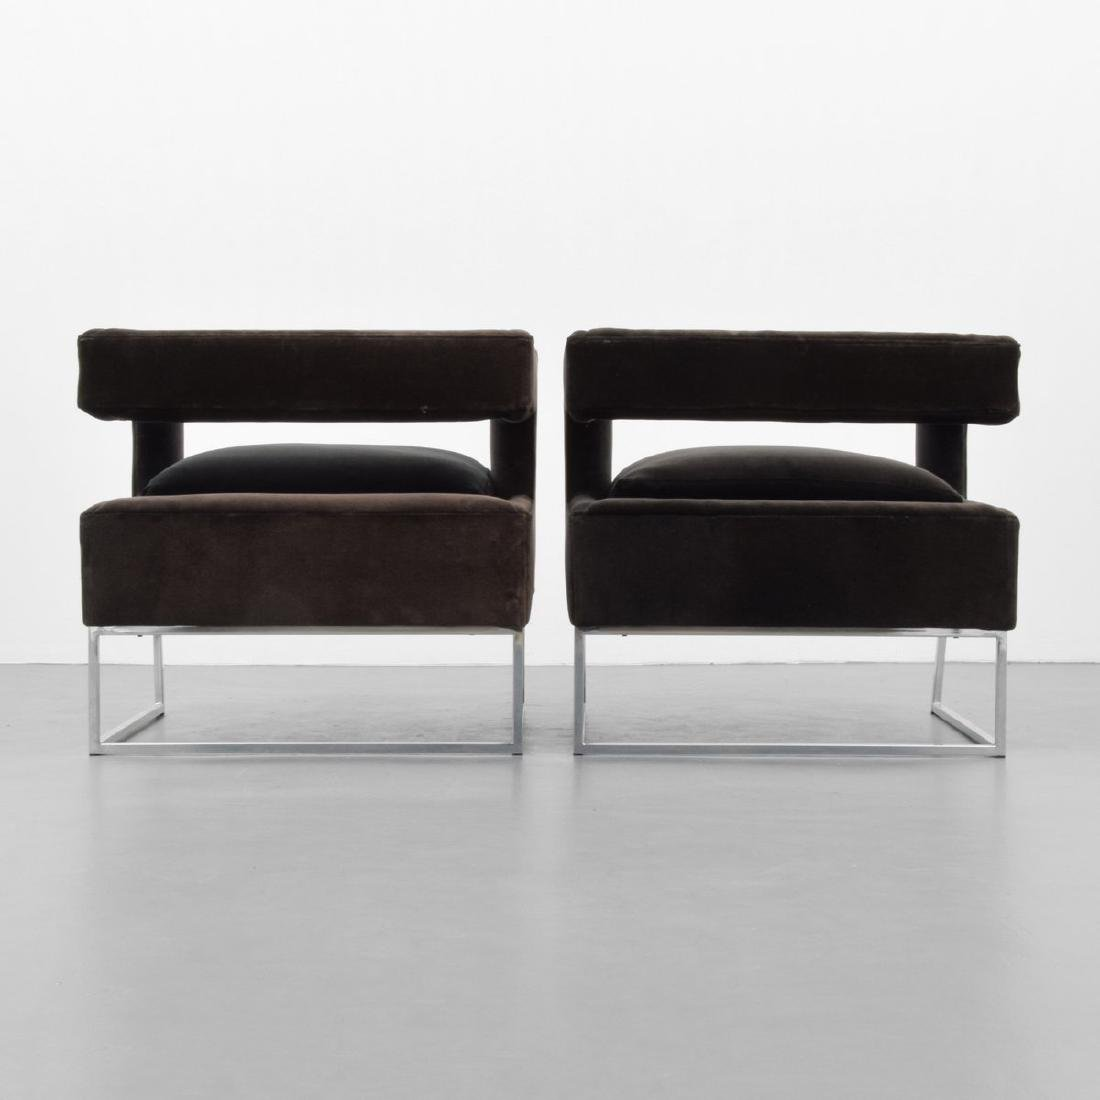 Pair of Milo Baughman Lounge Chairs - 3